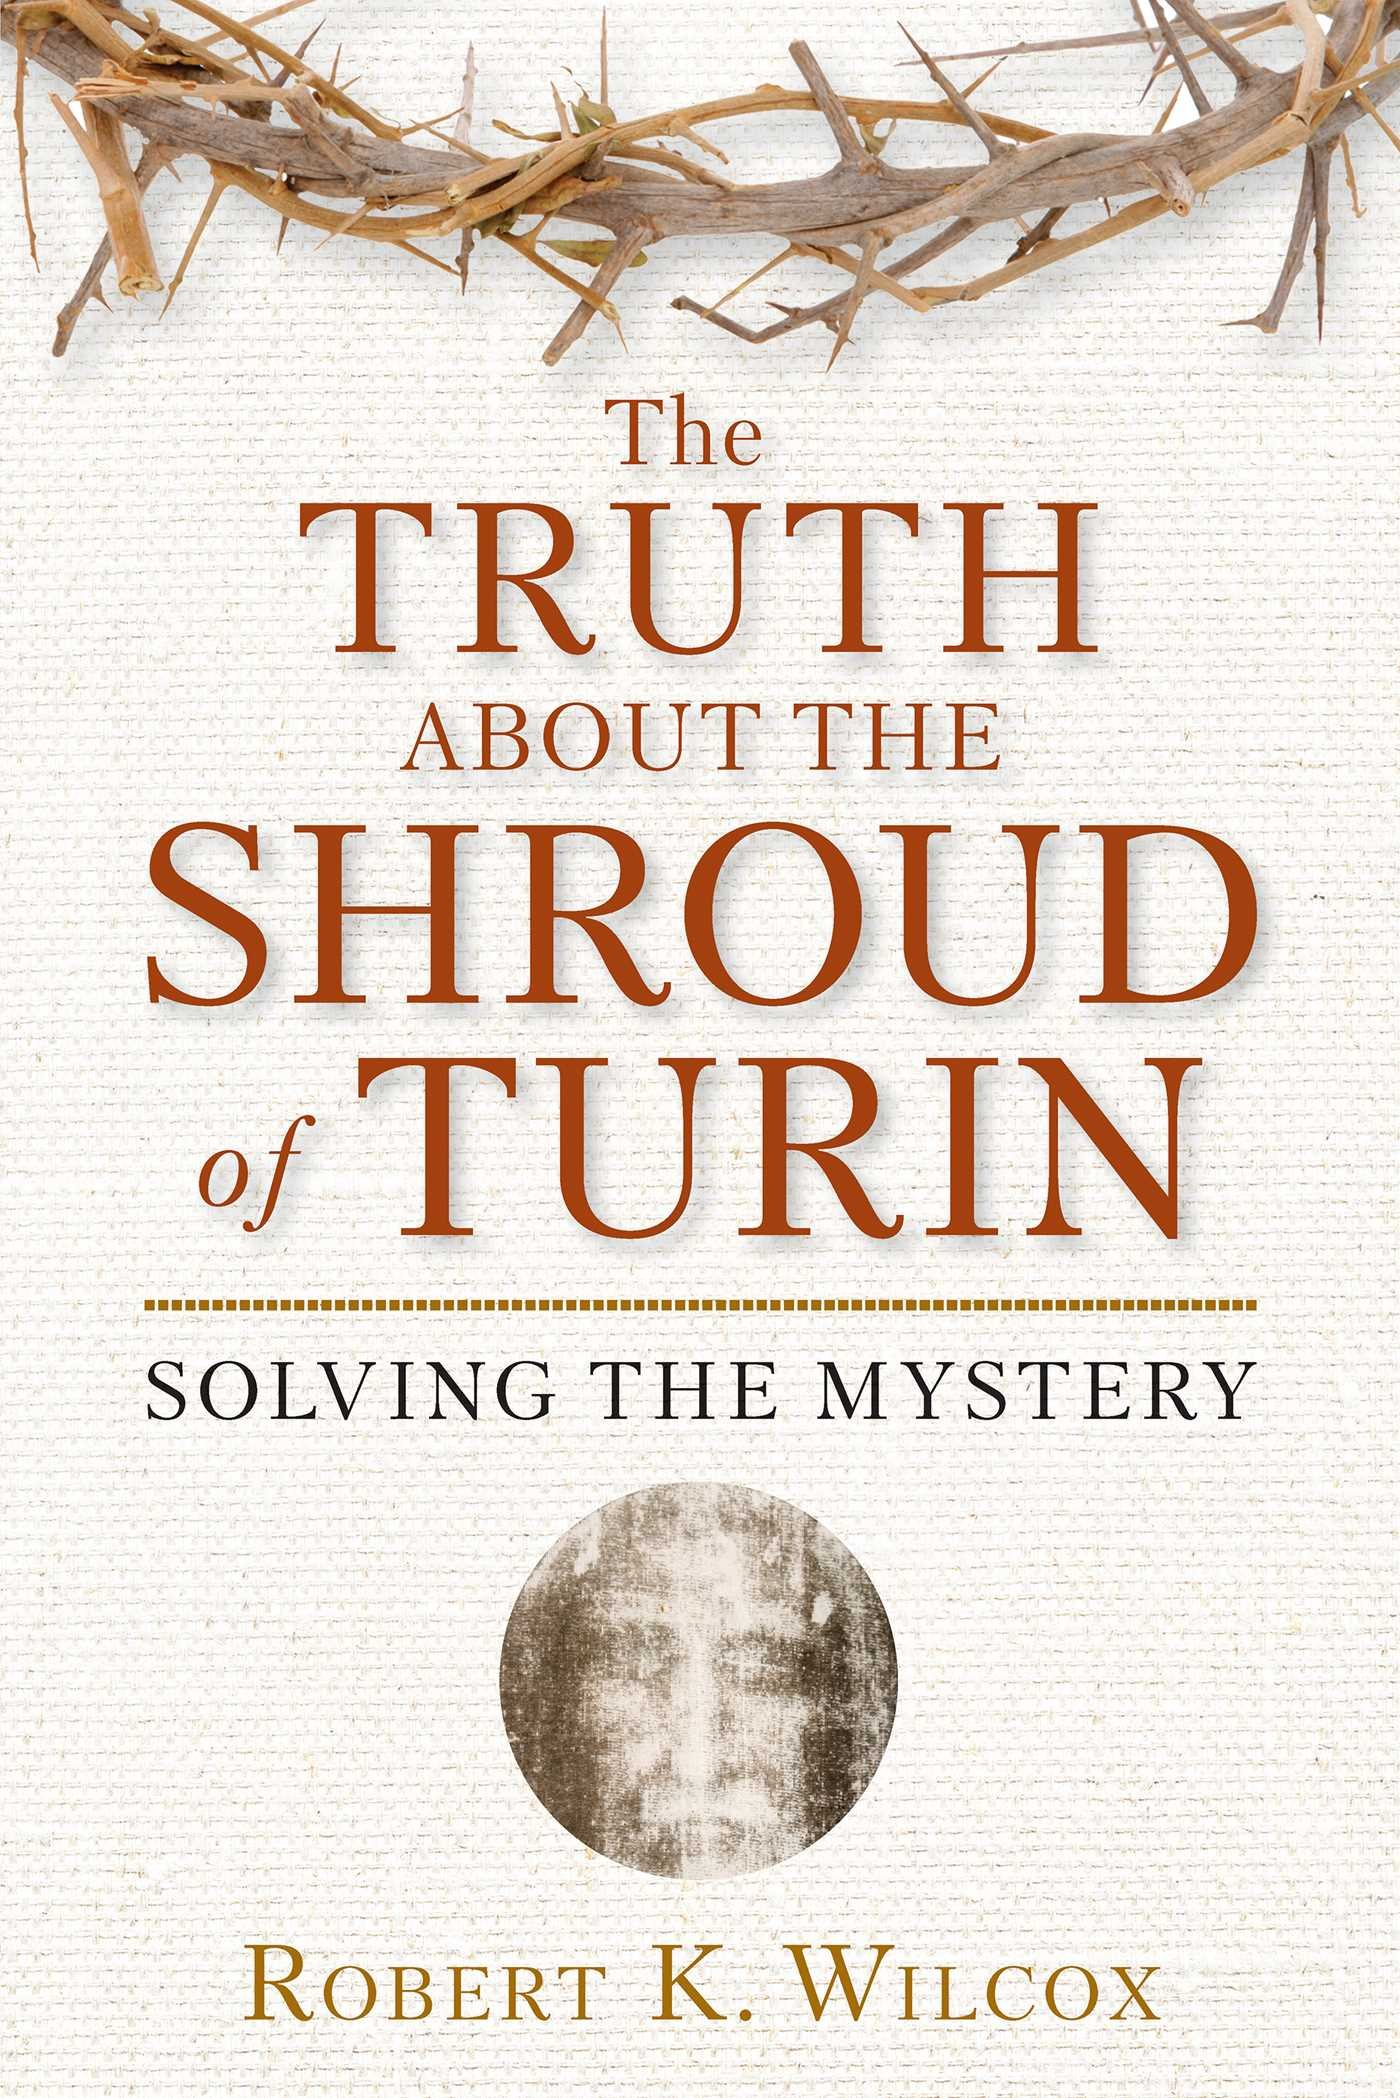 The Truth About The Shroud Of Turin Solving The Mystery Robert K